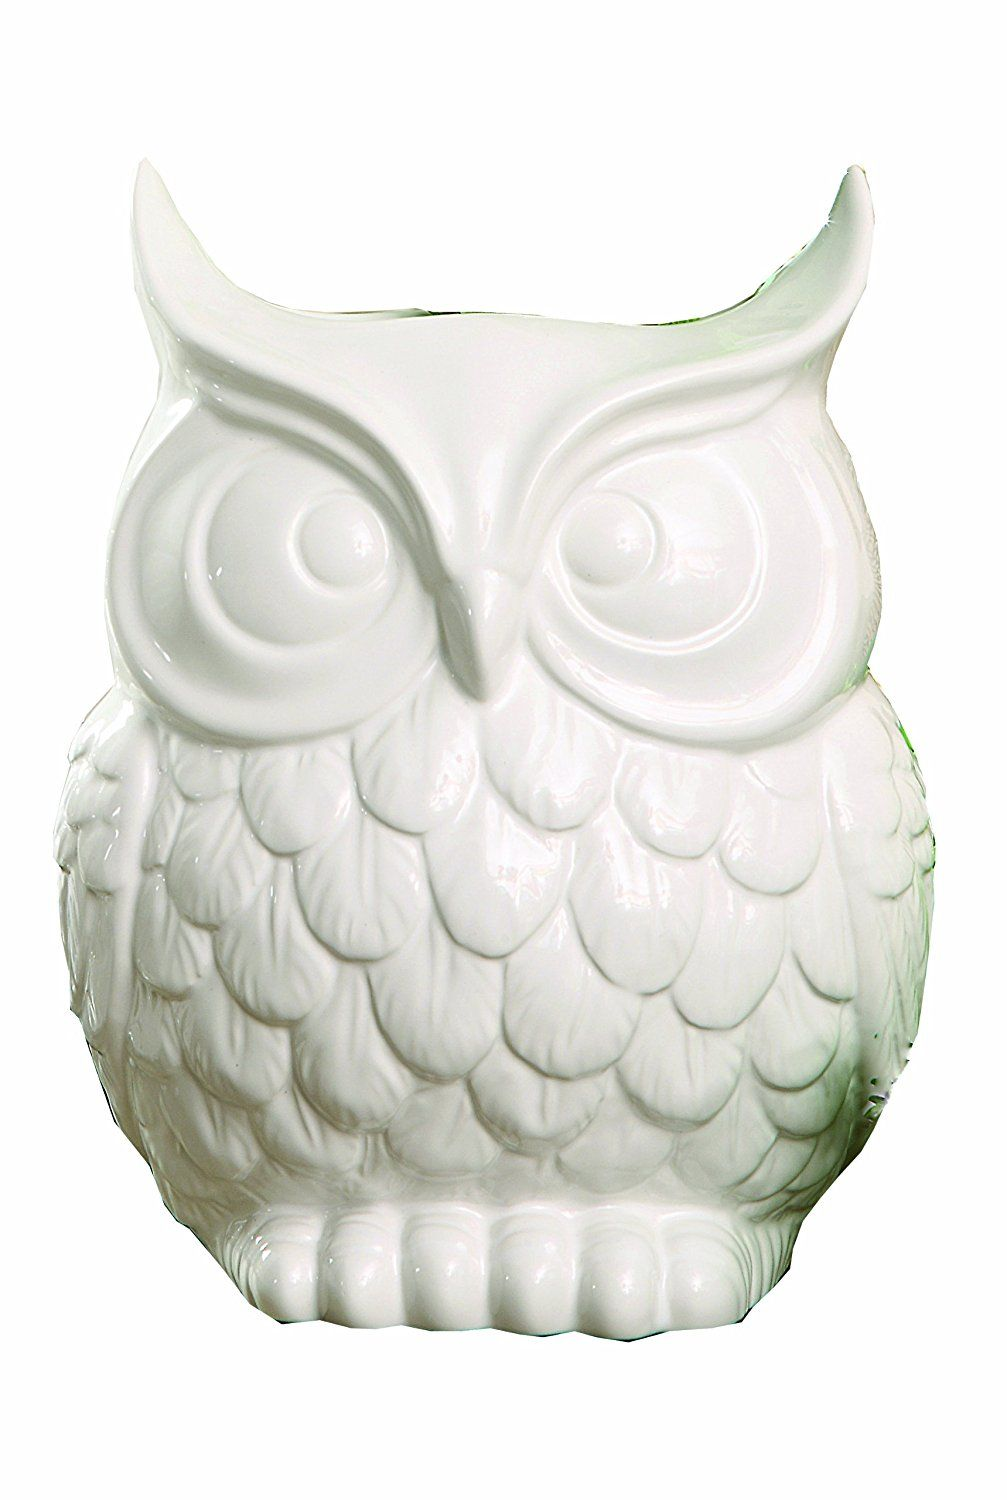 Creative Co-op Glee Dolomite Owl Vase, 9-Inch, White -- Find out more about the great product at the image link. (This is an affiliate link) #Vases